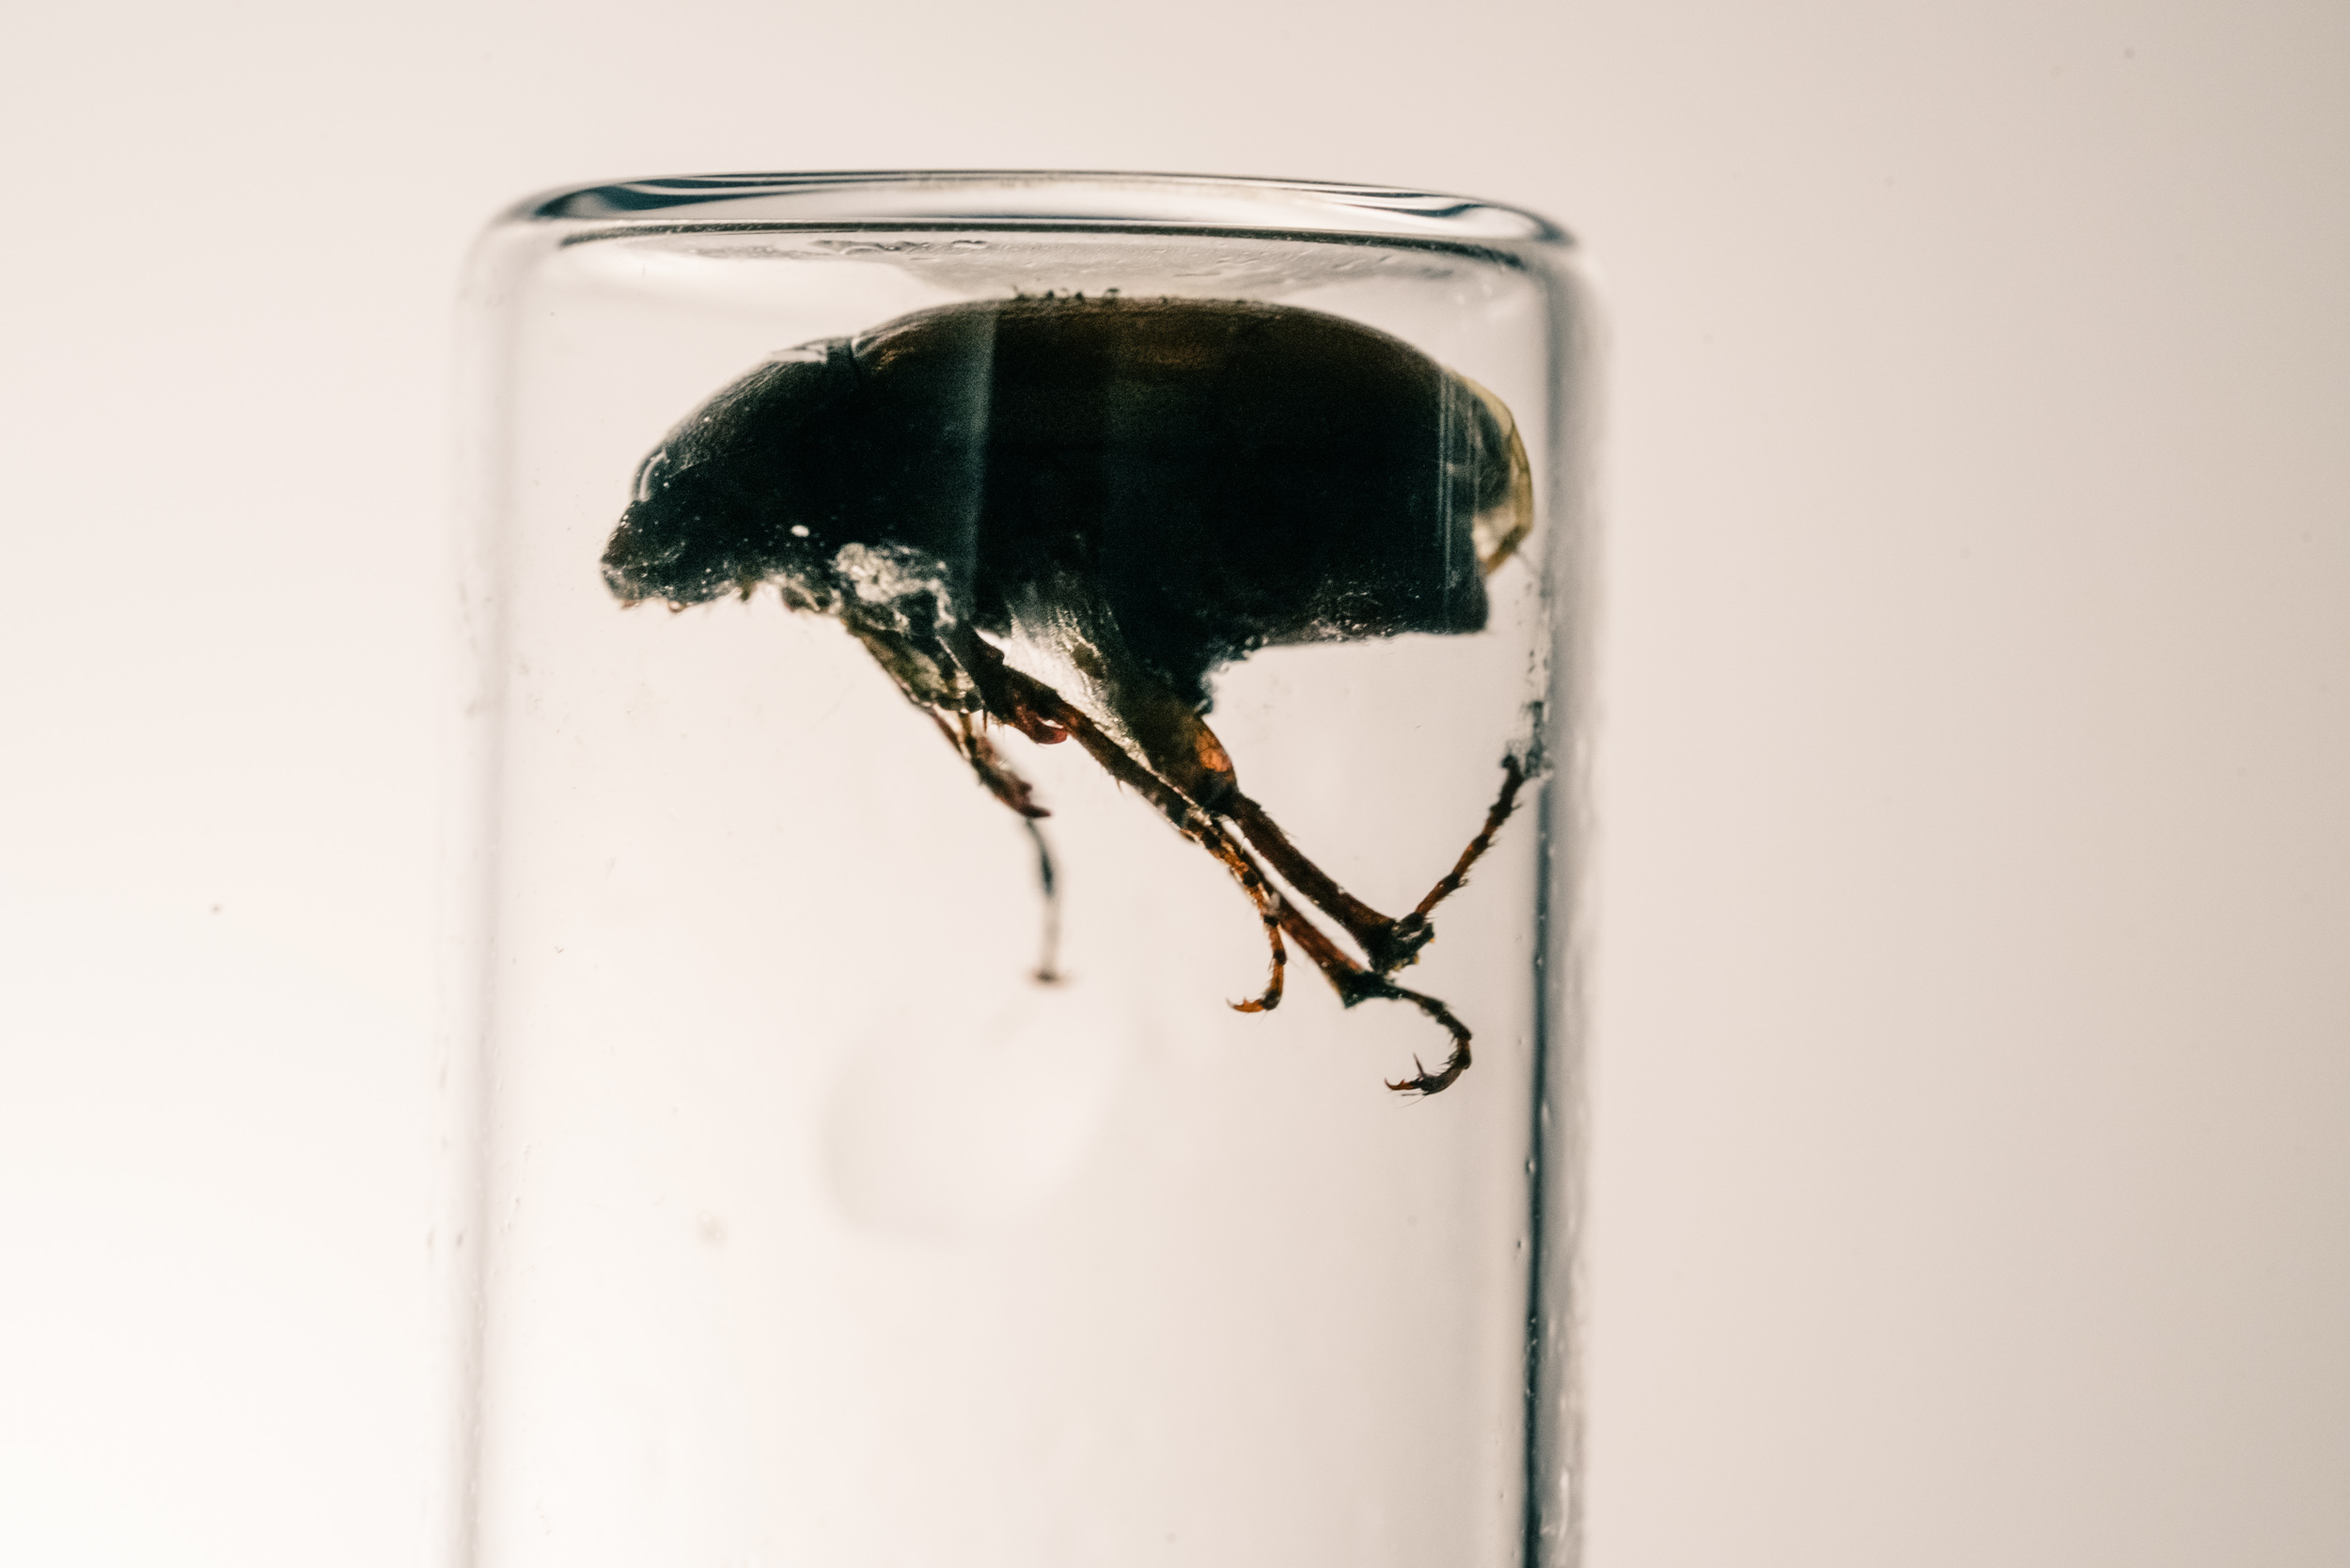 beetle poisoned by mercury in test tube